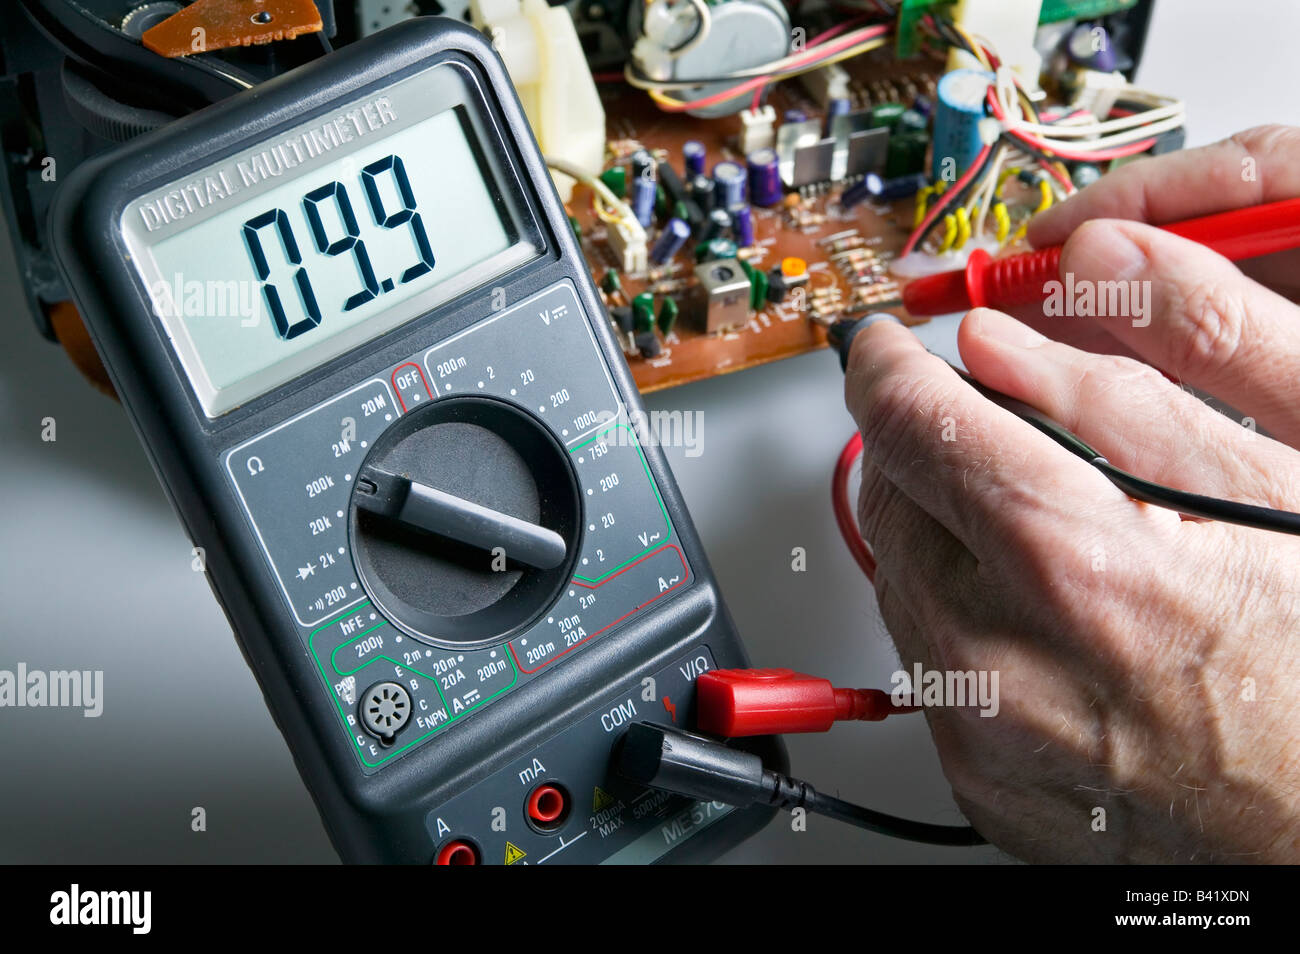 Multimeter Stock Photos Images Alamy Test Car Fuse Box A Digital Being Used To Check Resistance On Circuit Board Image